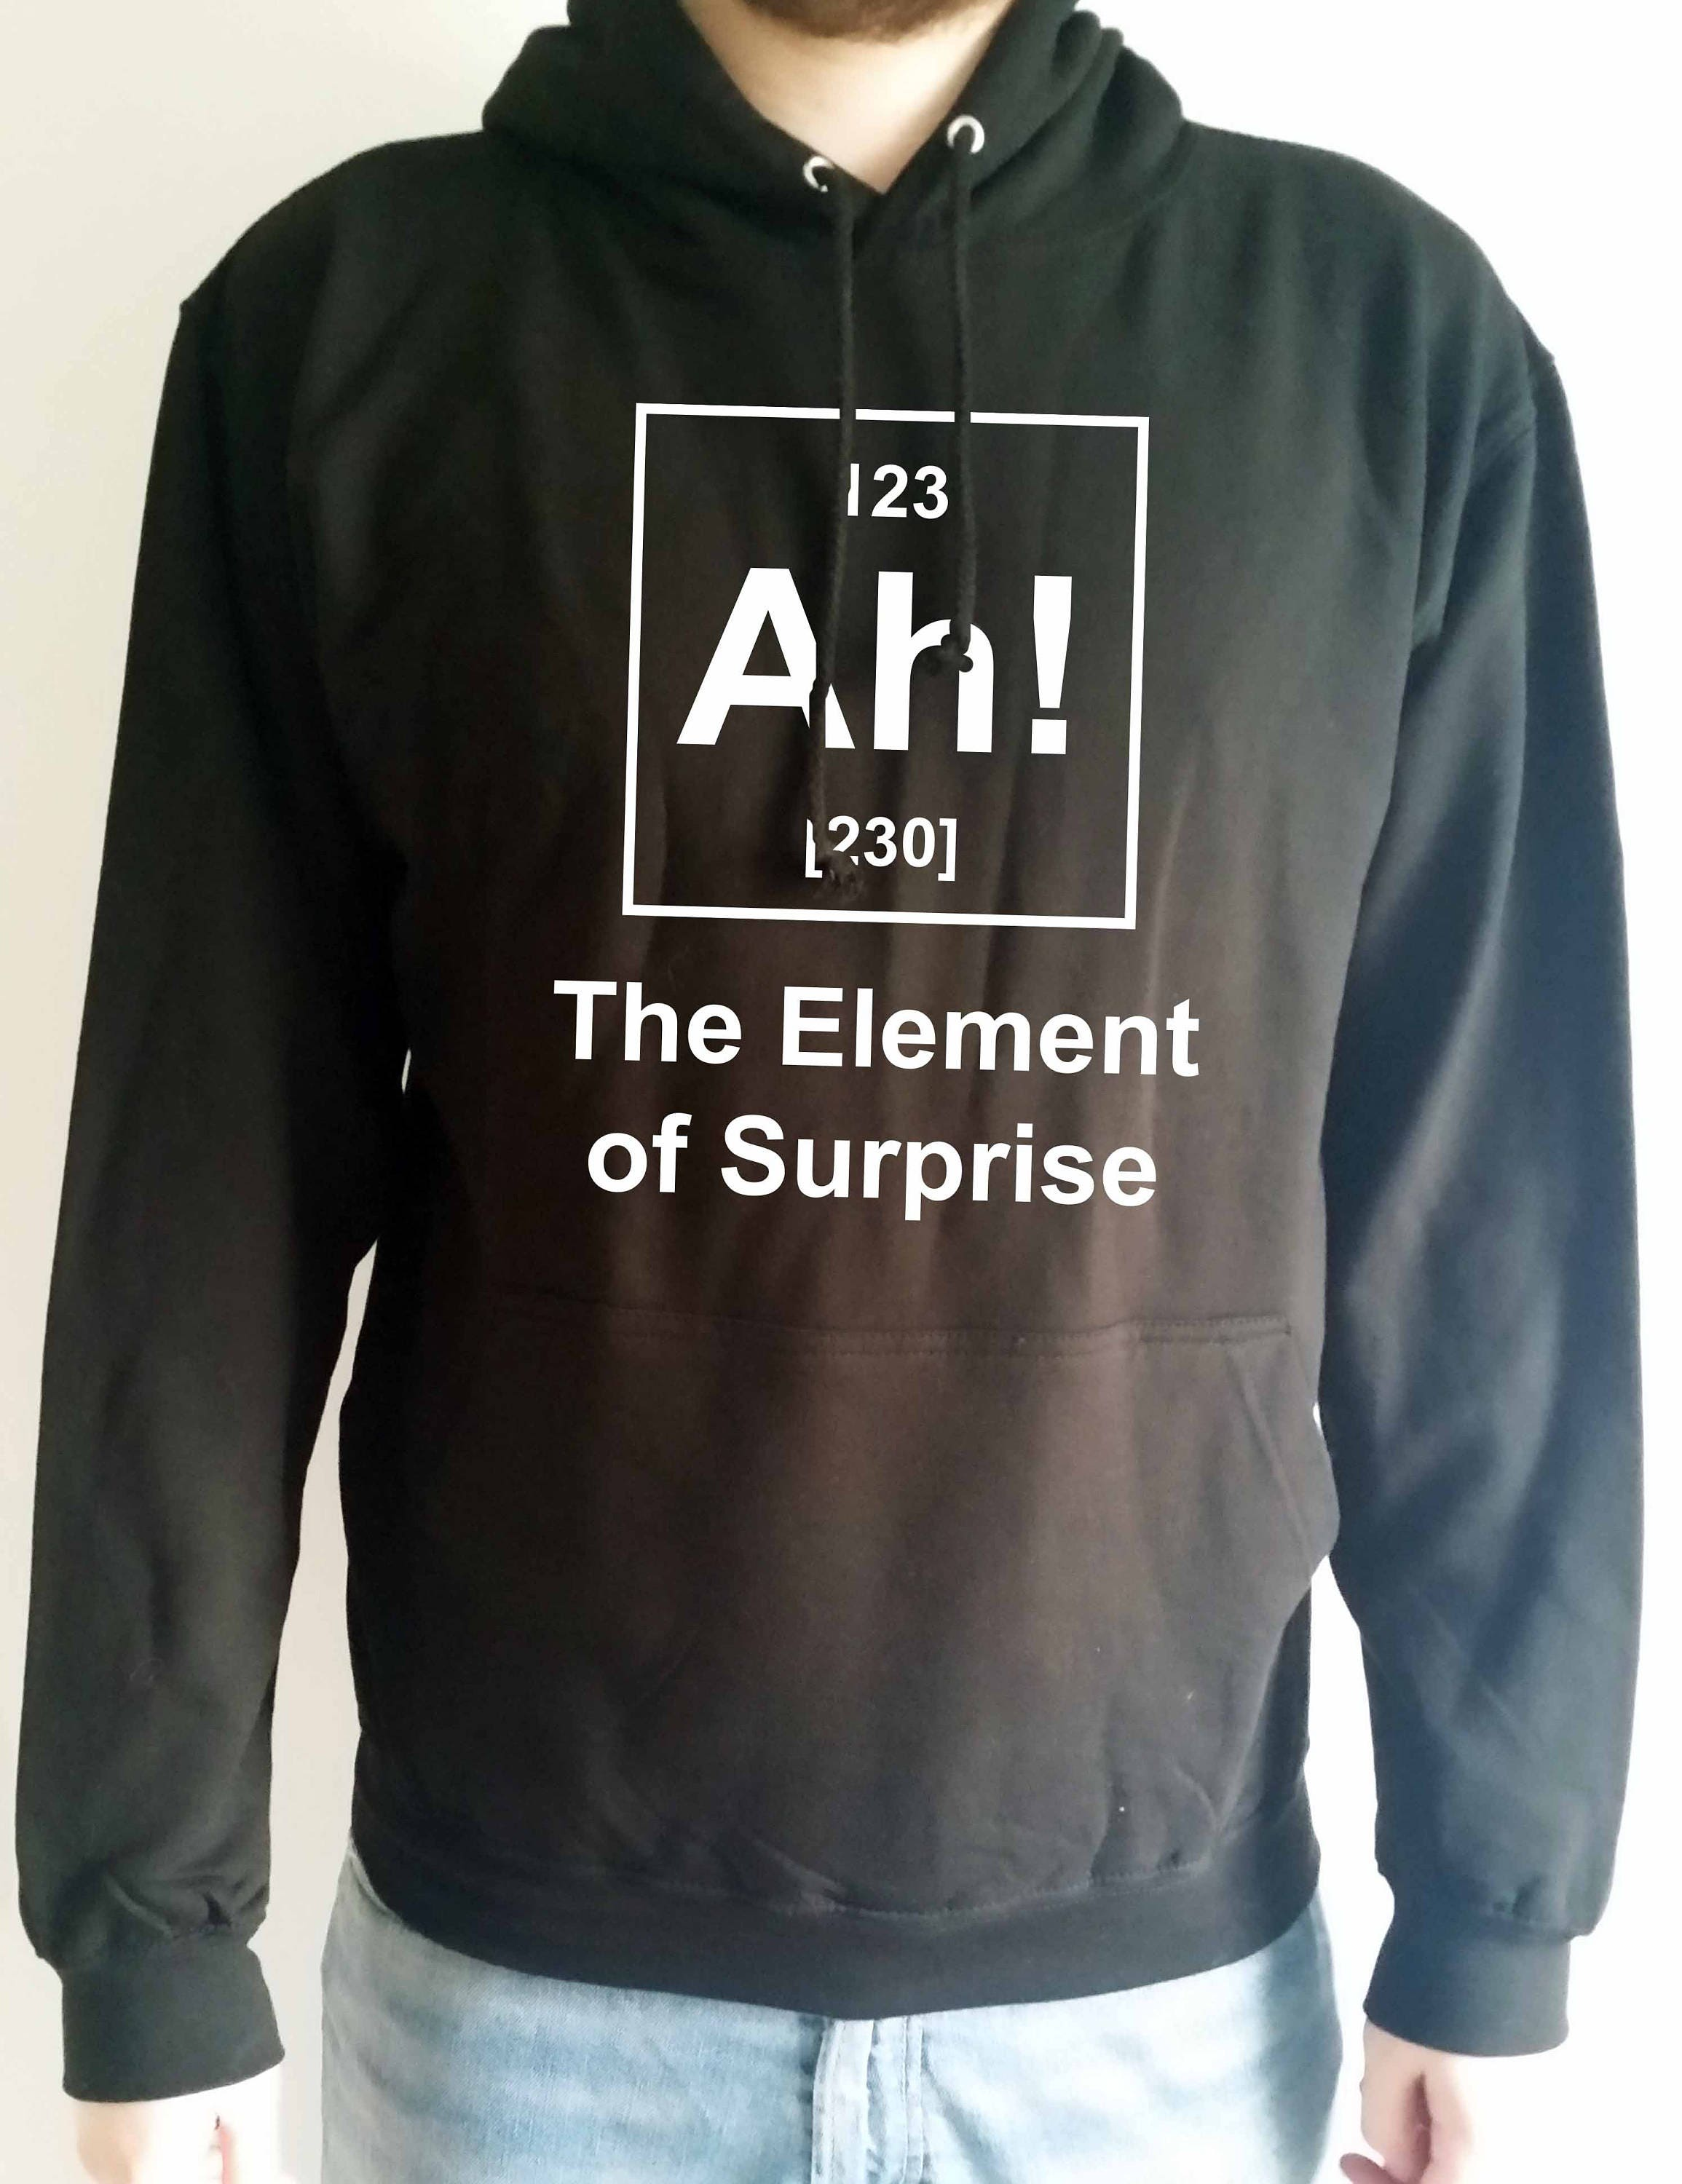 Ah! the element of surprise periodic table funny adults hooded sweatshirt WjSr16tTl